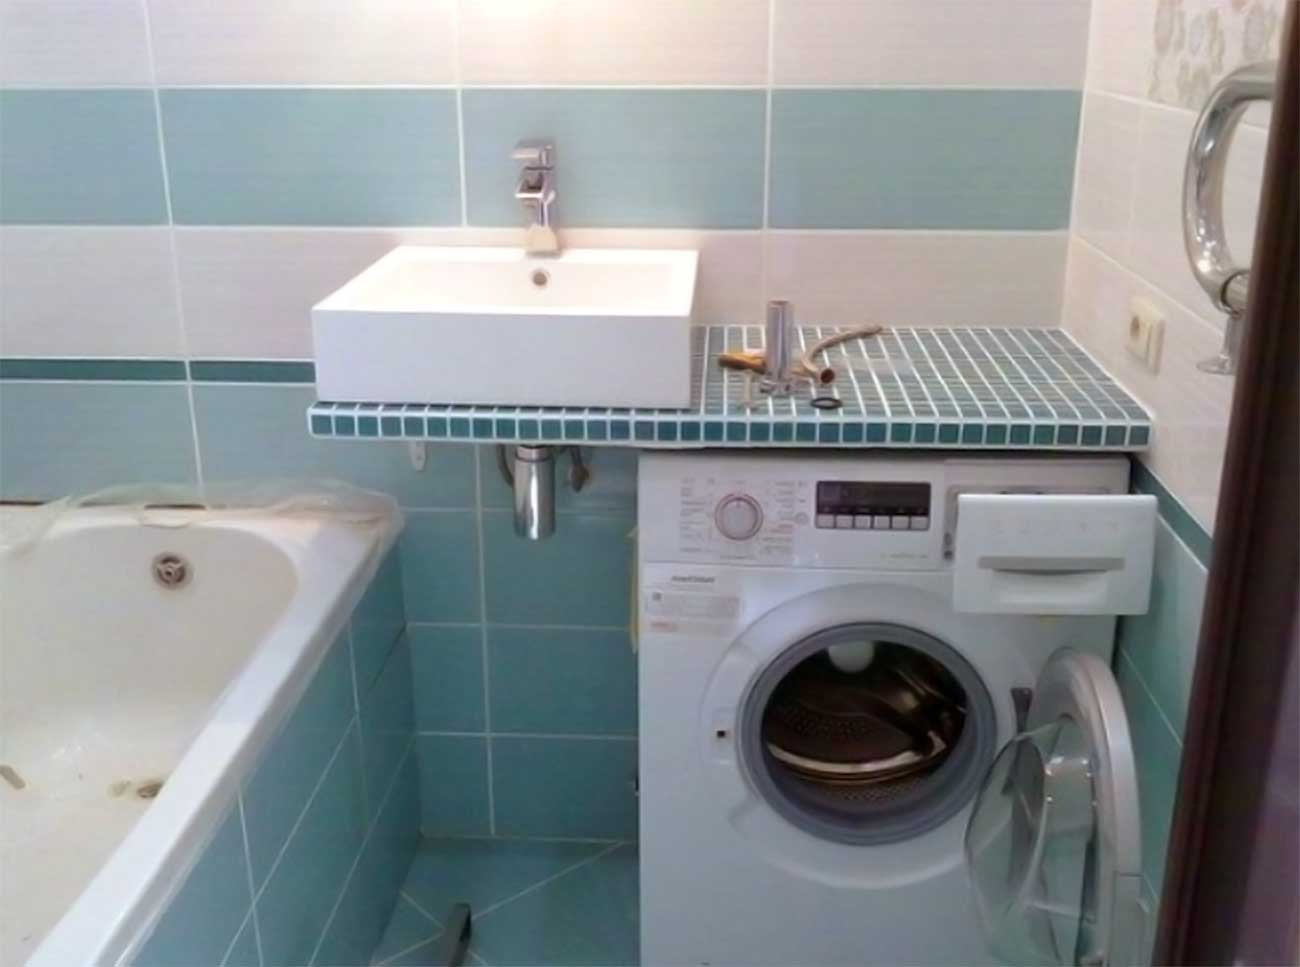 How To Put Washing Machine In A Small Bathroom In The Right Way For Space Saving My Lovely Home